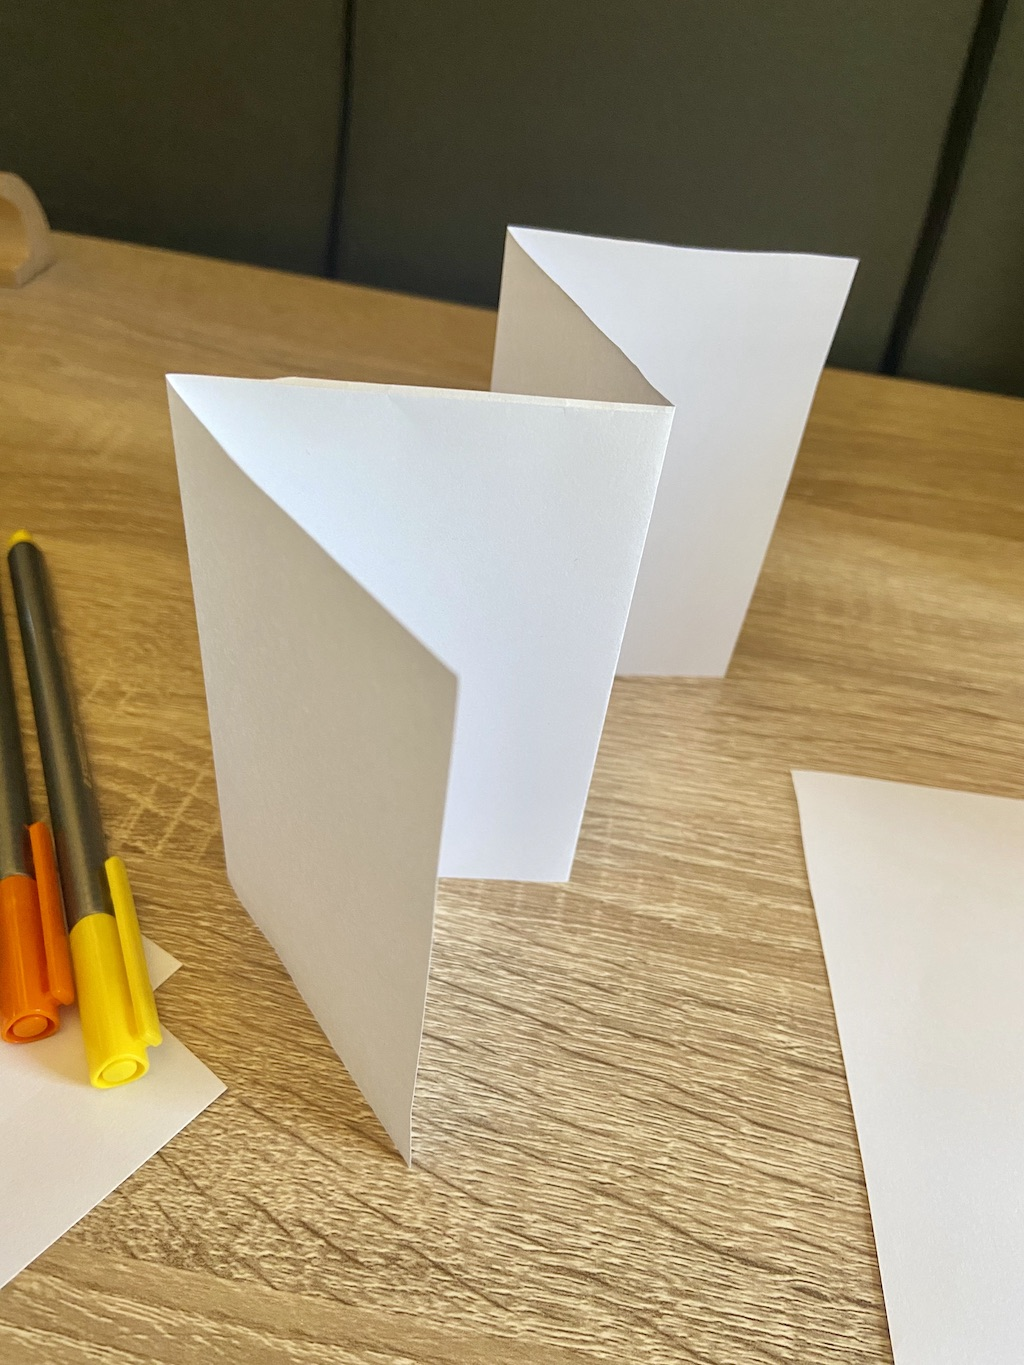 Flip over the paper and do the same fold. Your paper should now look like a W.